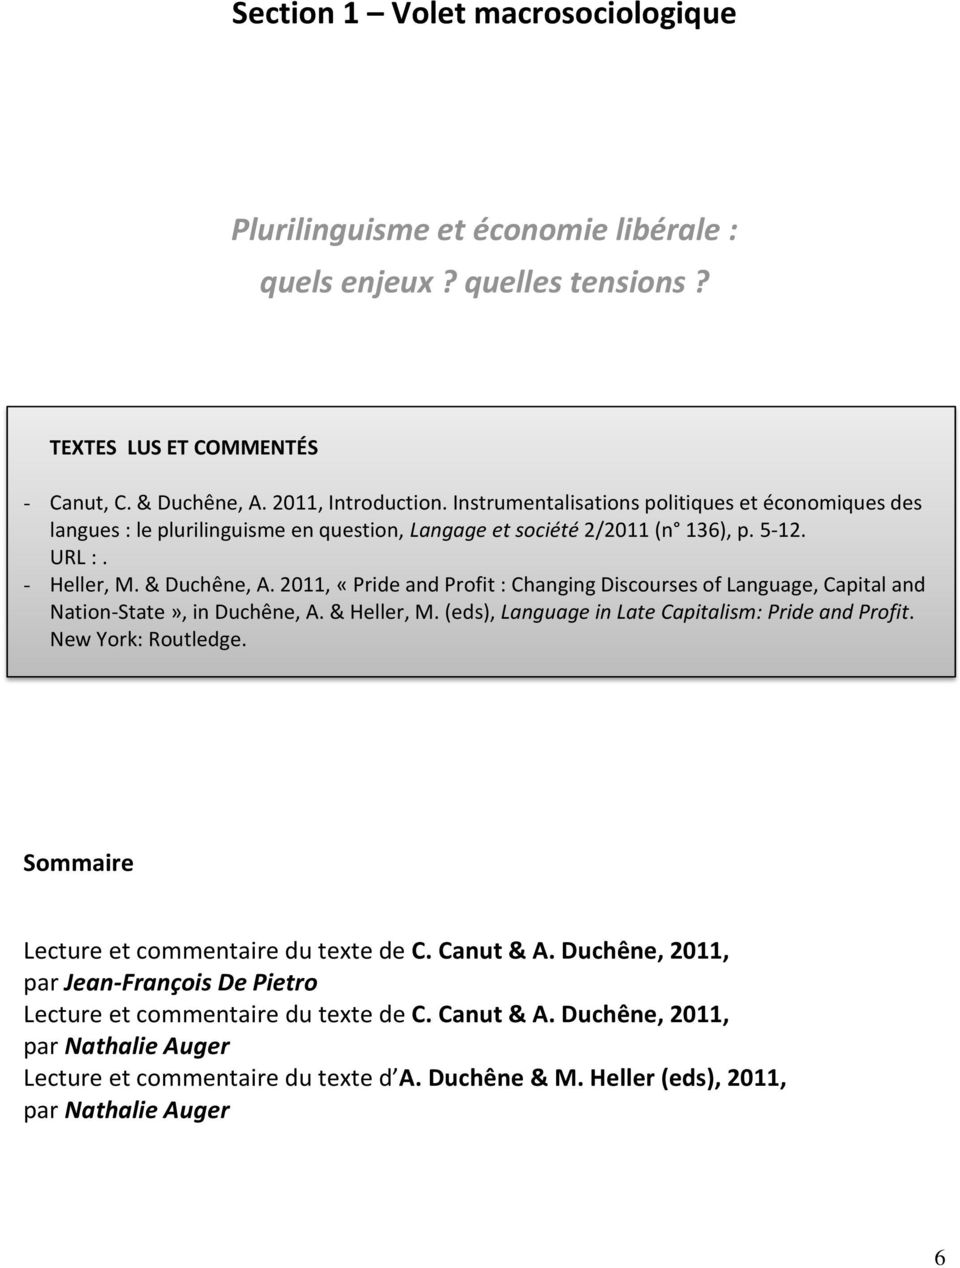 2011, «Pride and Profit : Changing Discourses of Language, Capital and Nation-State», in Duchêne, A. & Heller, M. (eds), Language in Late Capitalism: Pride and Profit. New York: Routledge.